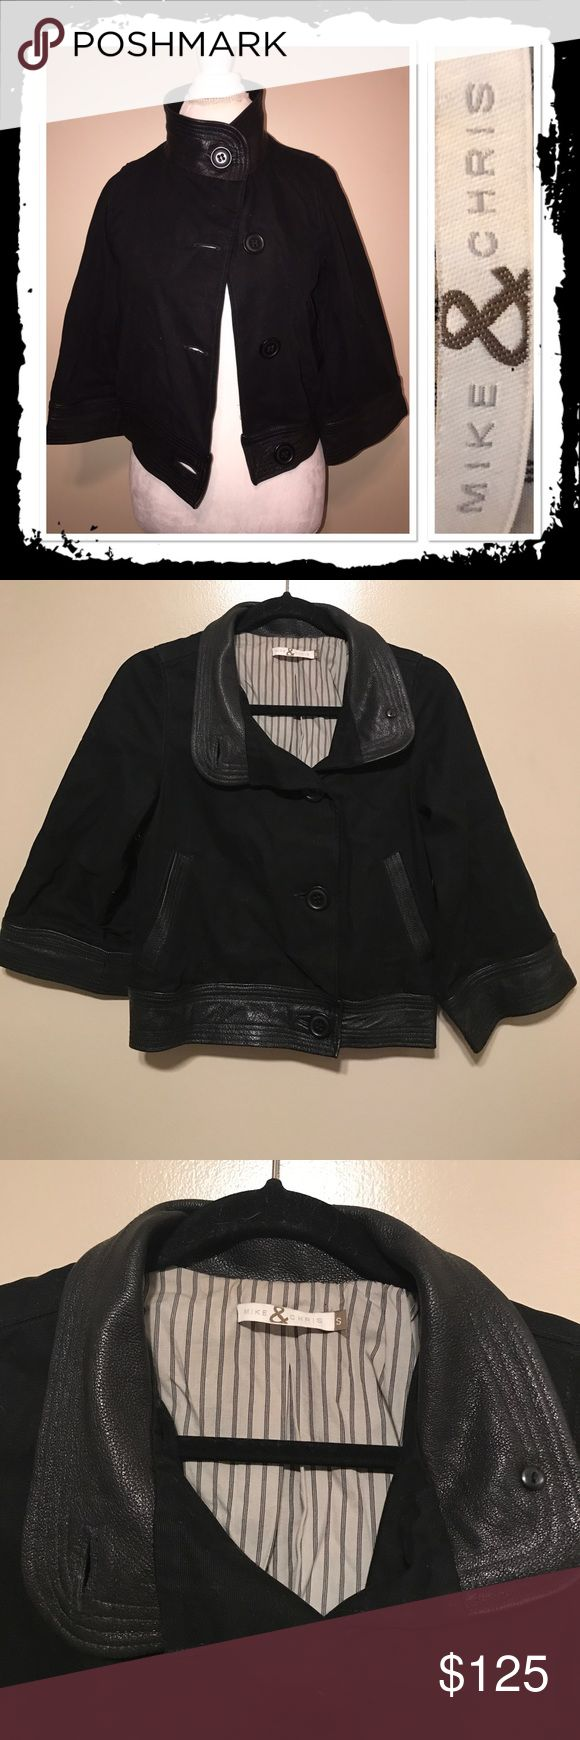 Mike & Chris leather trim jacket From celebrity leather maker gorgeous canvas jacket with 100% leather trim retails over 500! Collar can be worn up or down Mike & Chris Jackets & Coats